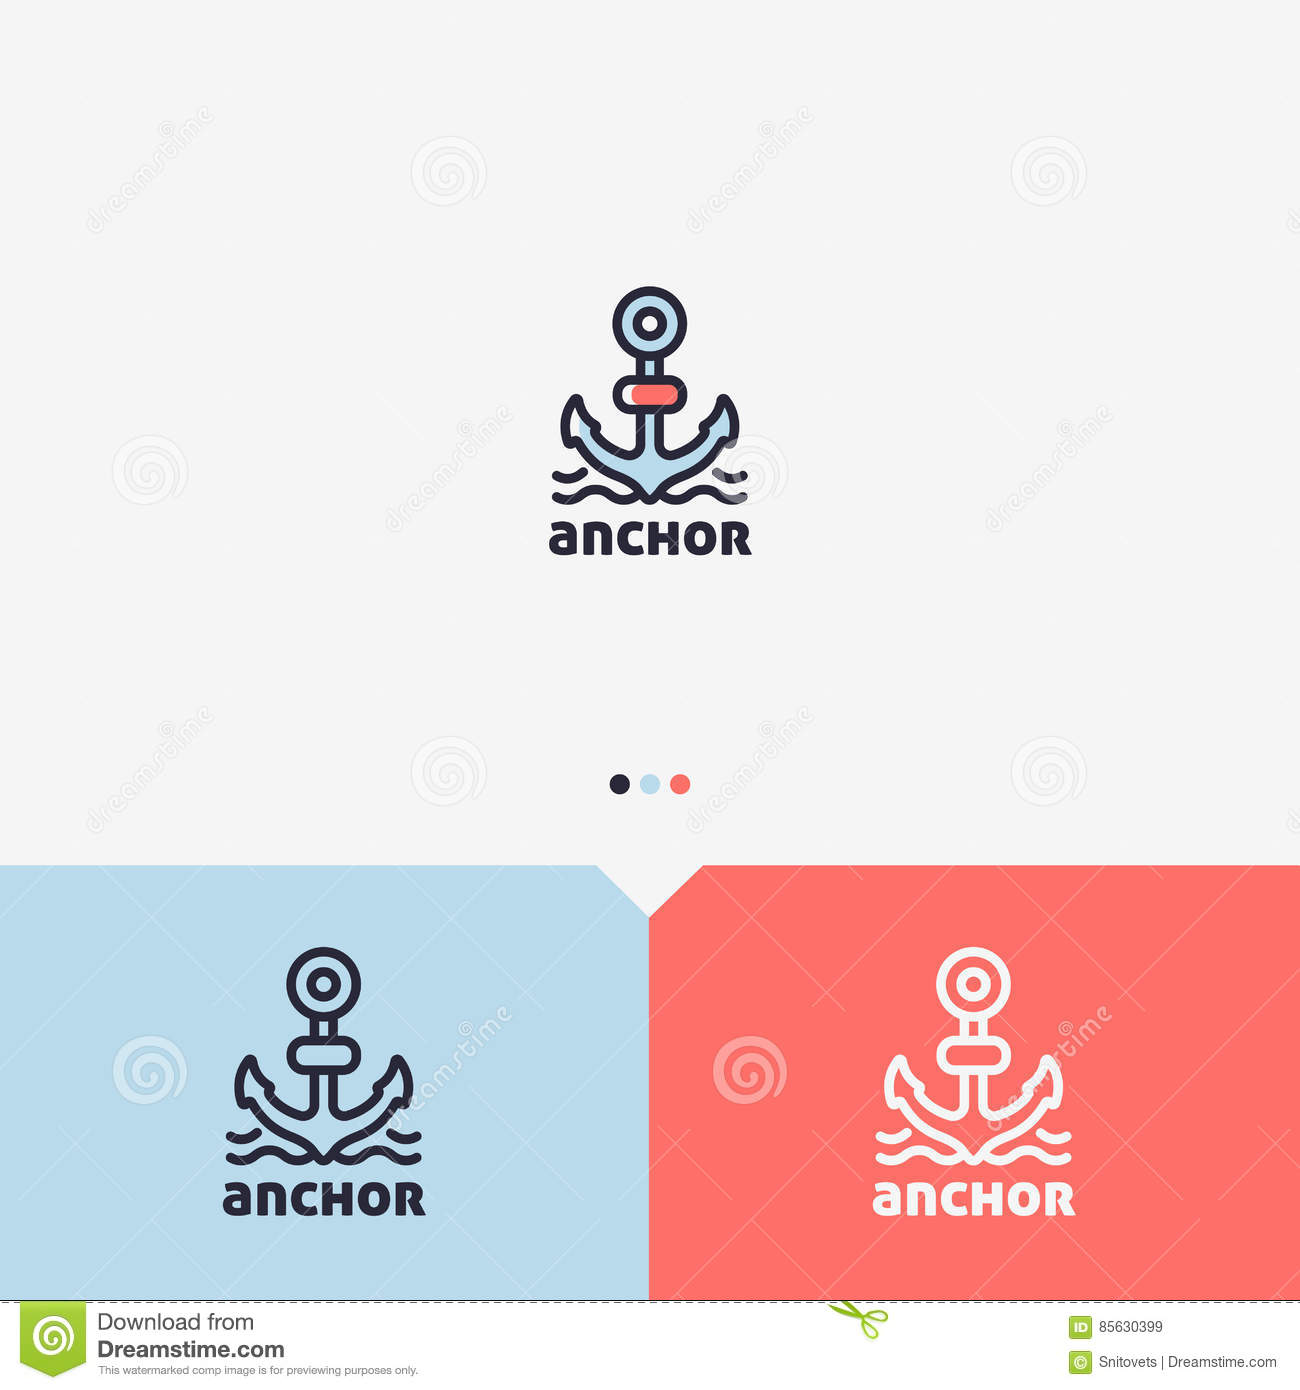 anchor logo design template simple and clean outline style color simple and clean outline style color and monochromatic version